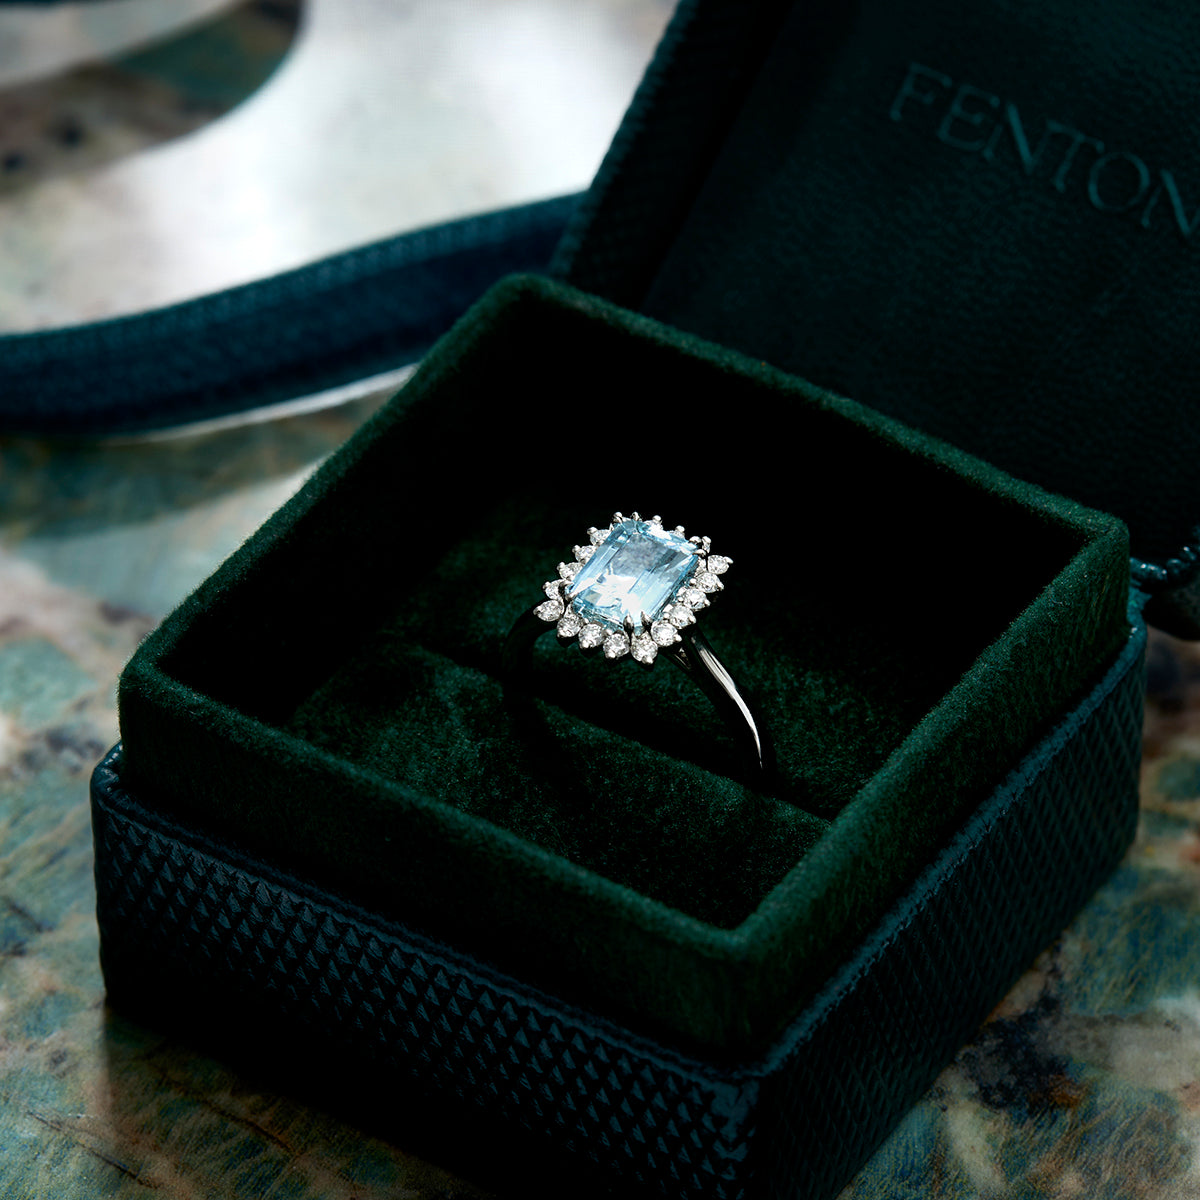 engagement ring, buying and engagement ring, lab grown vs natural diamonds / gemstones, ring errors, ring buying mistakes, what to look for when buying an engagement ring